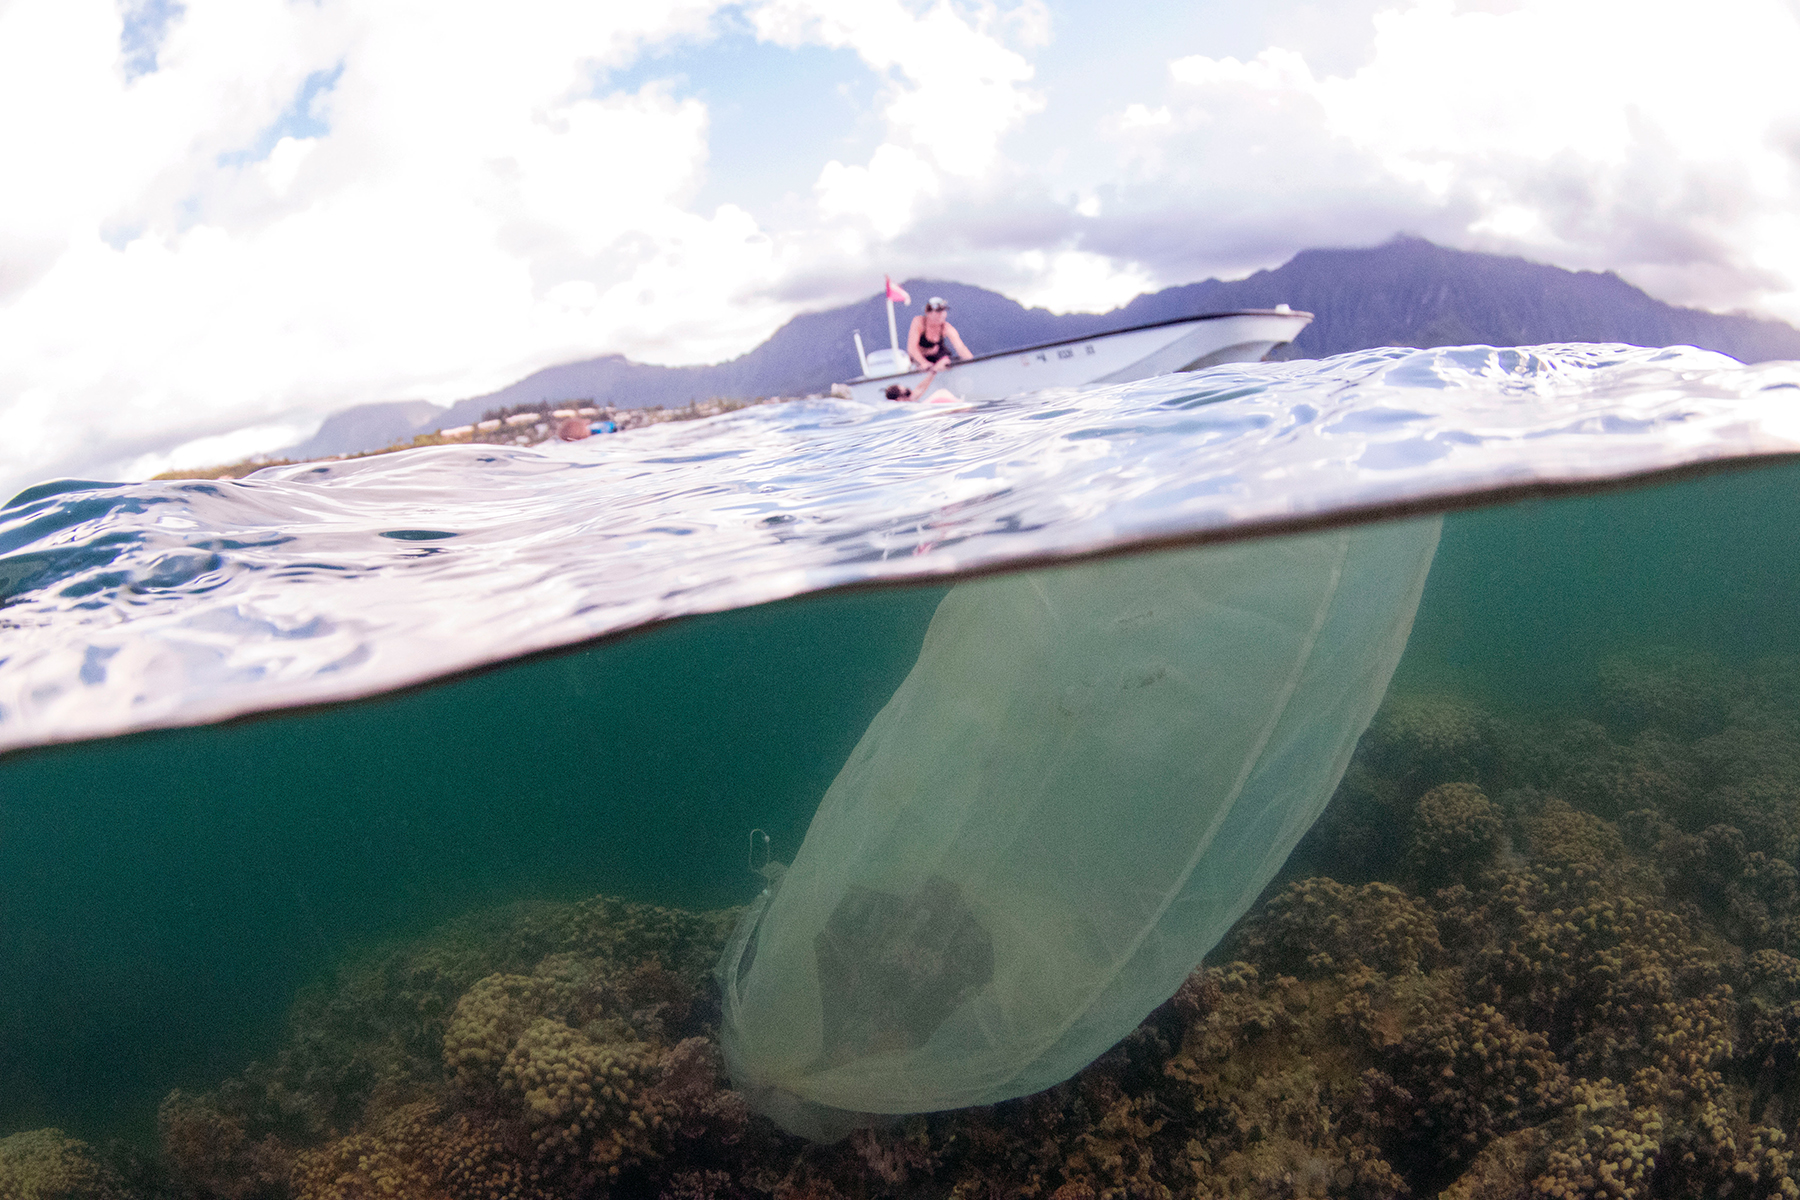 <p></noscript>Scientists have attached fine mesh nets to healthy coral heads in Kaneohe Bay to collect the spawn so they can breed super corals.</p>